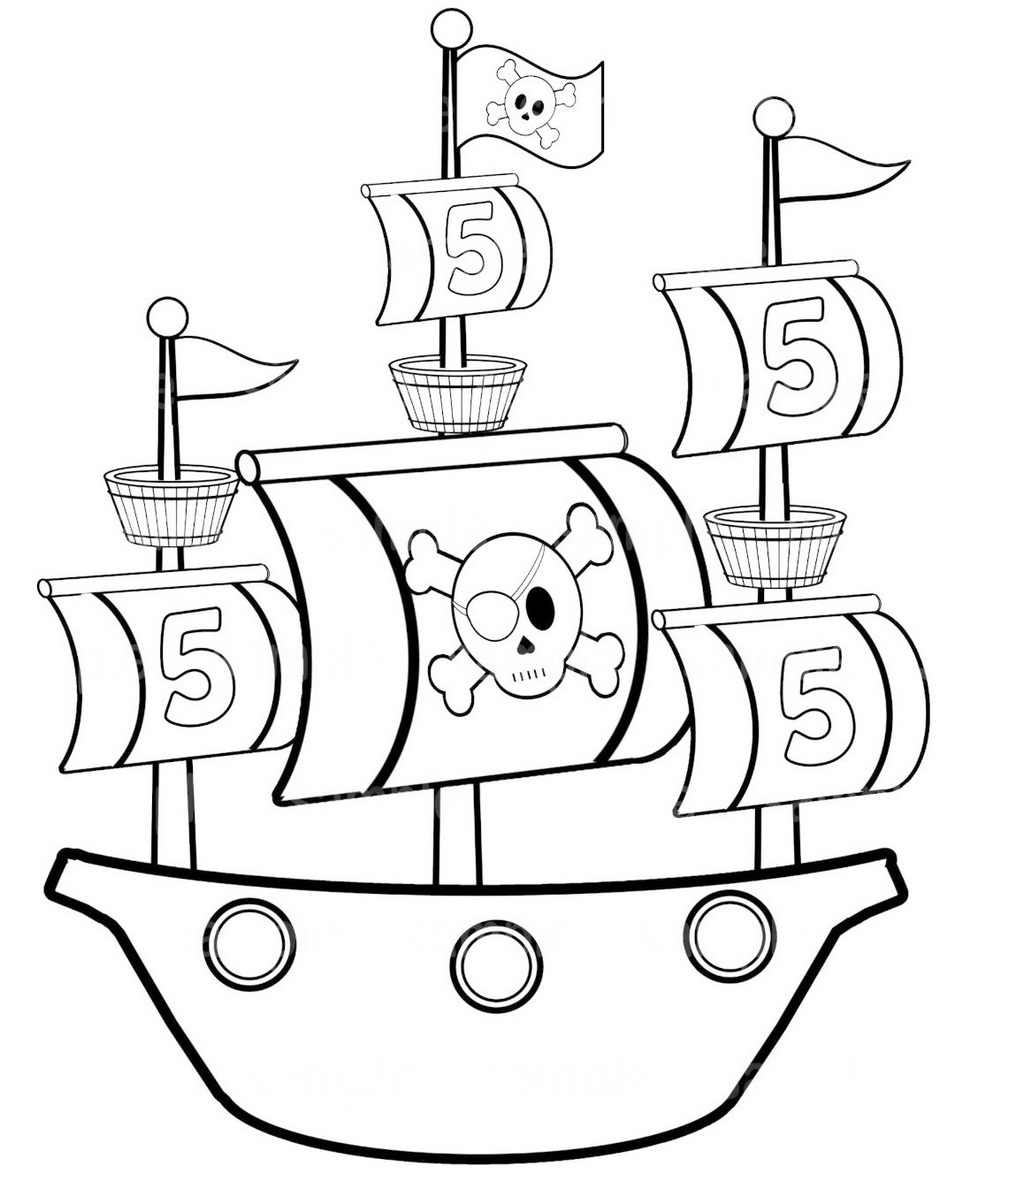 pirate ship to color beehive illustration ship color to pirate